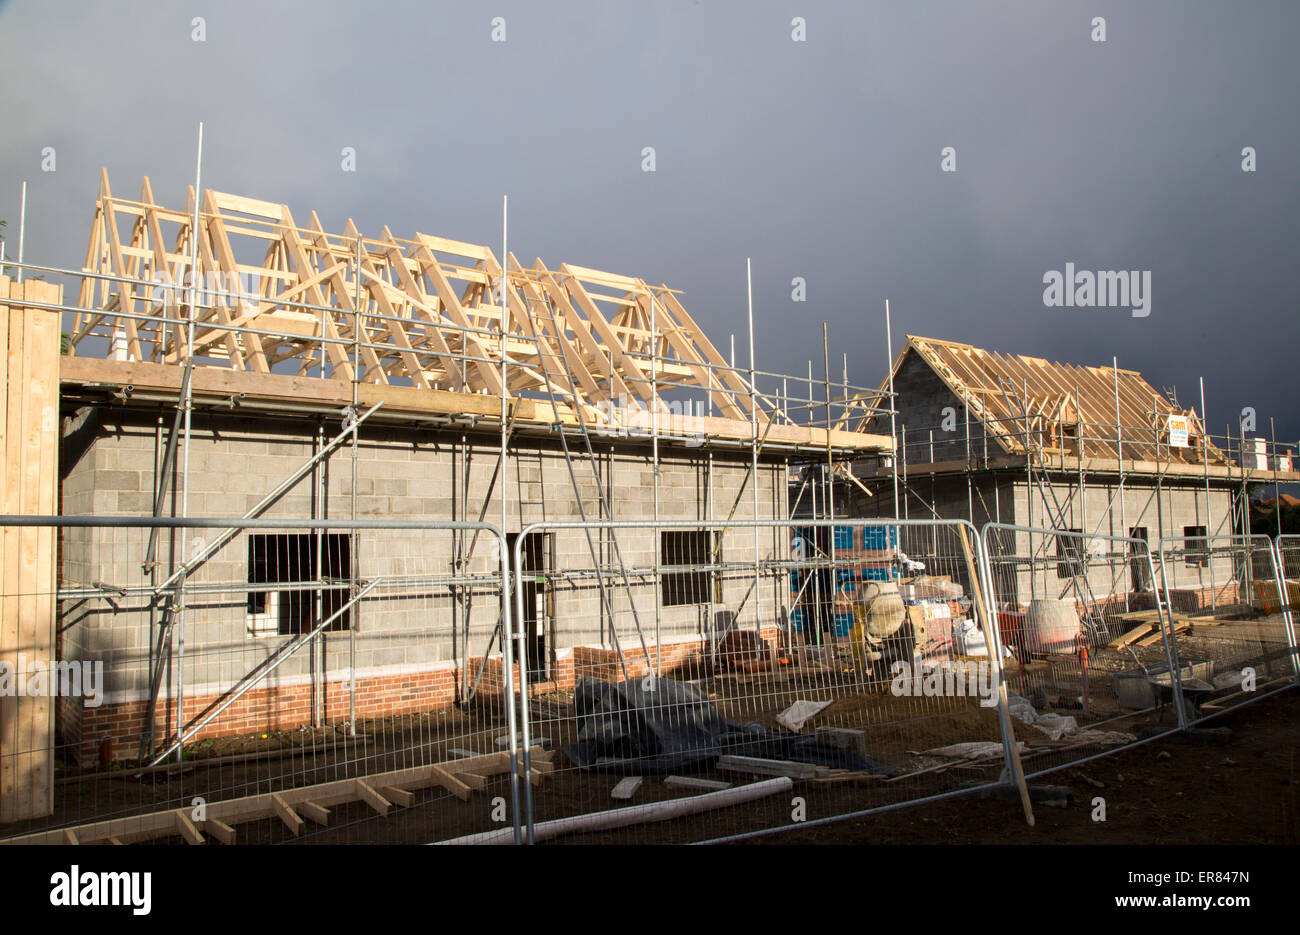 New houses under construction in the village of Bawdsey, Suffolk, England, UK Stock Photo